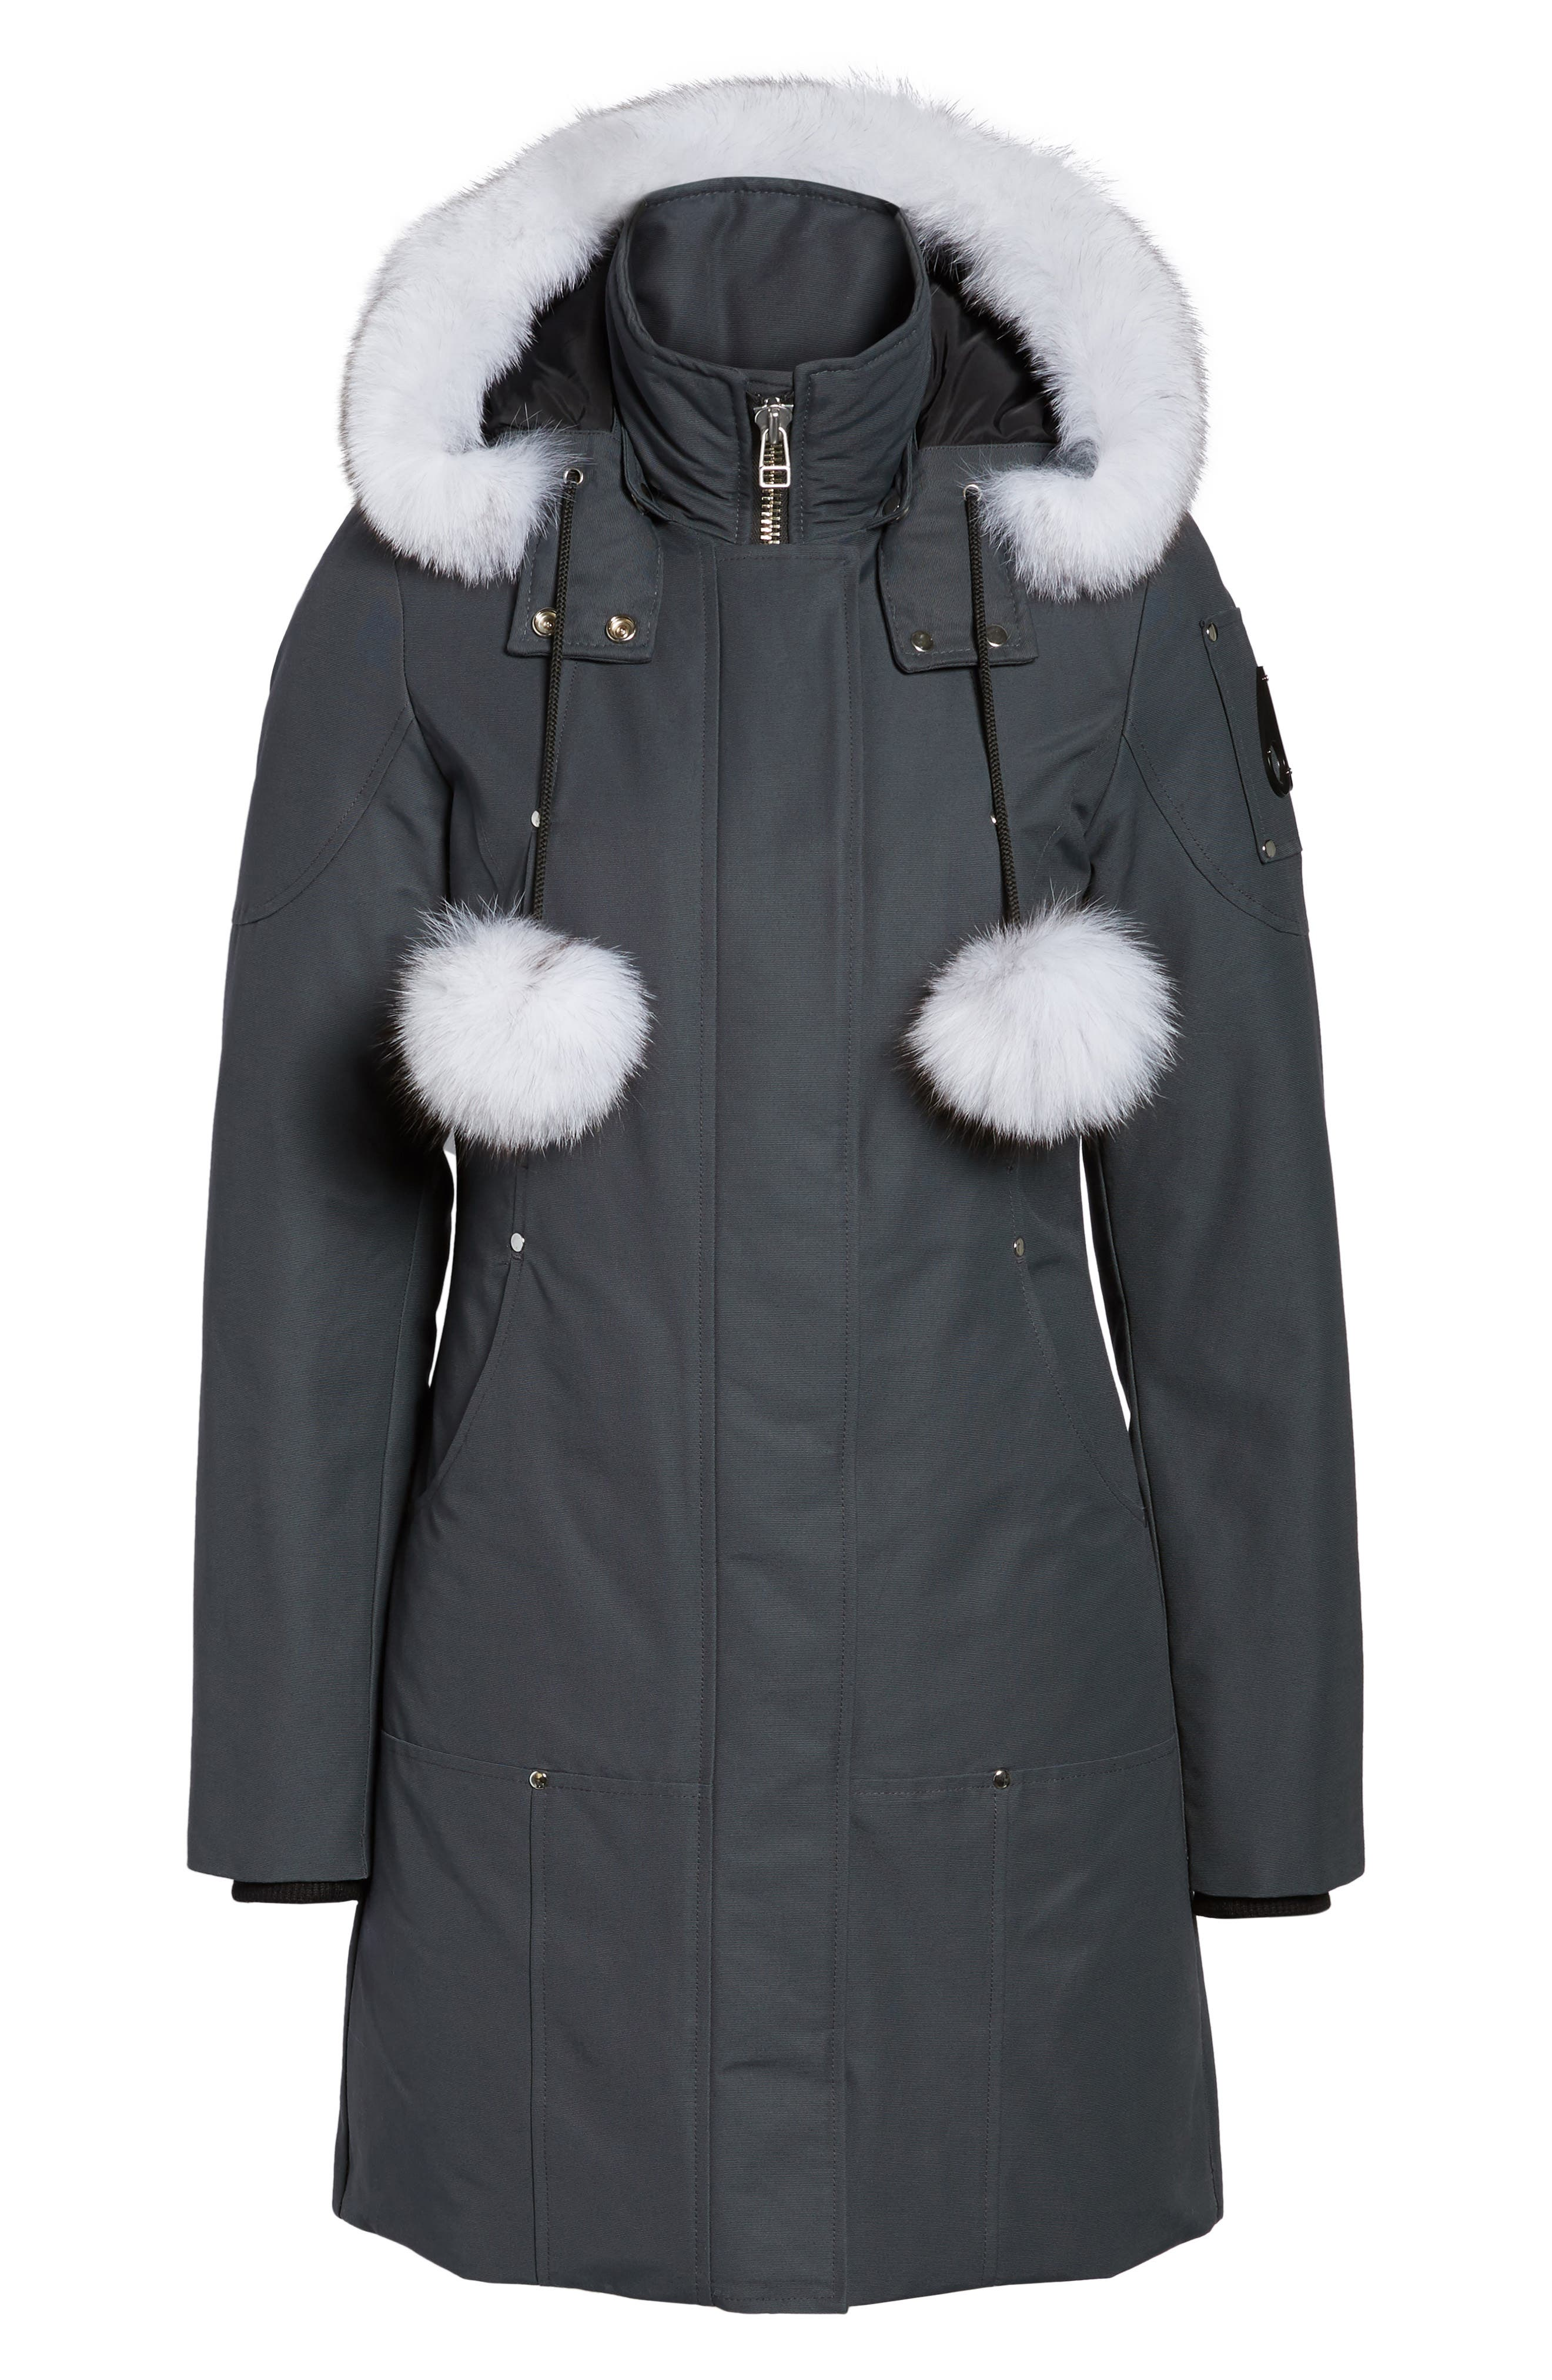 'Stirling' Down Parka with Genuine Fox Fur Trim,                             Alternate thumbnail 6, color,                             Granite/ White Fur